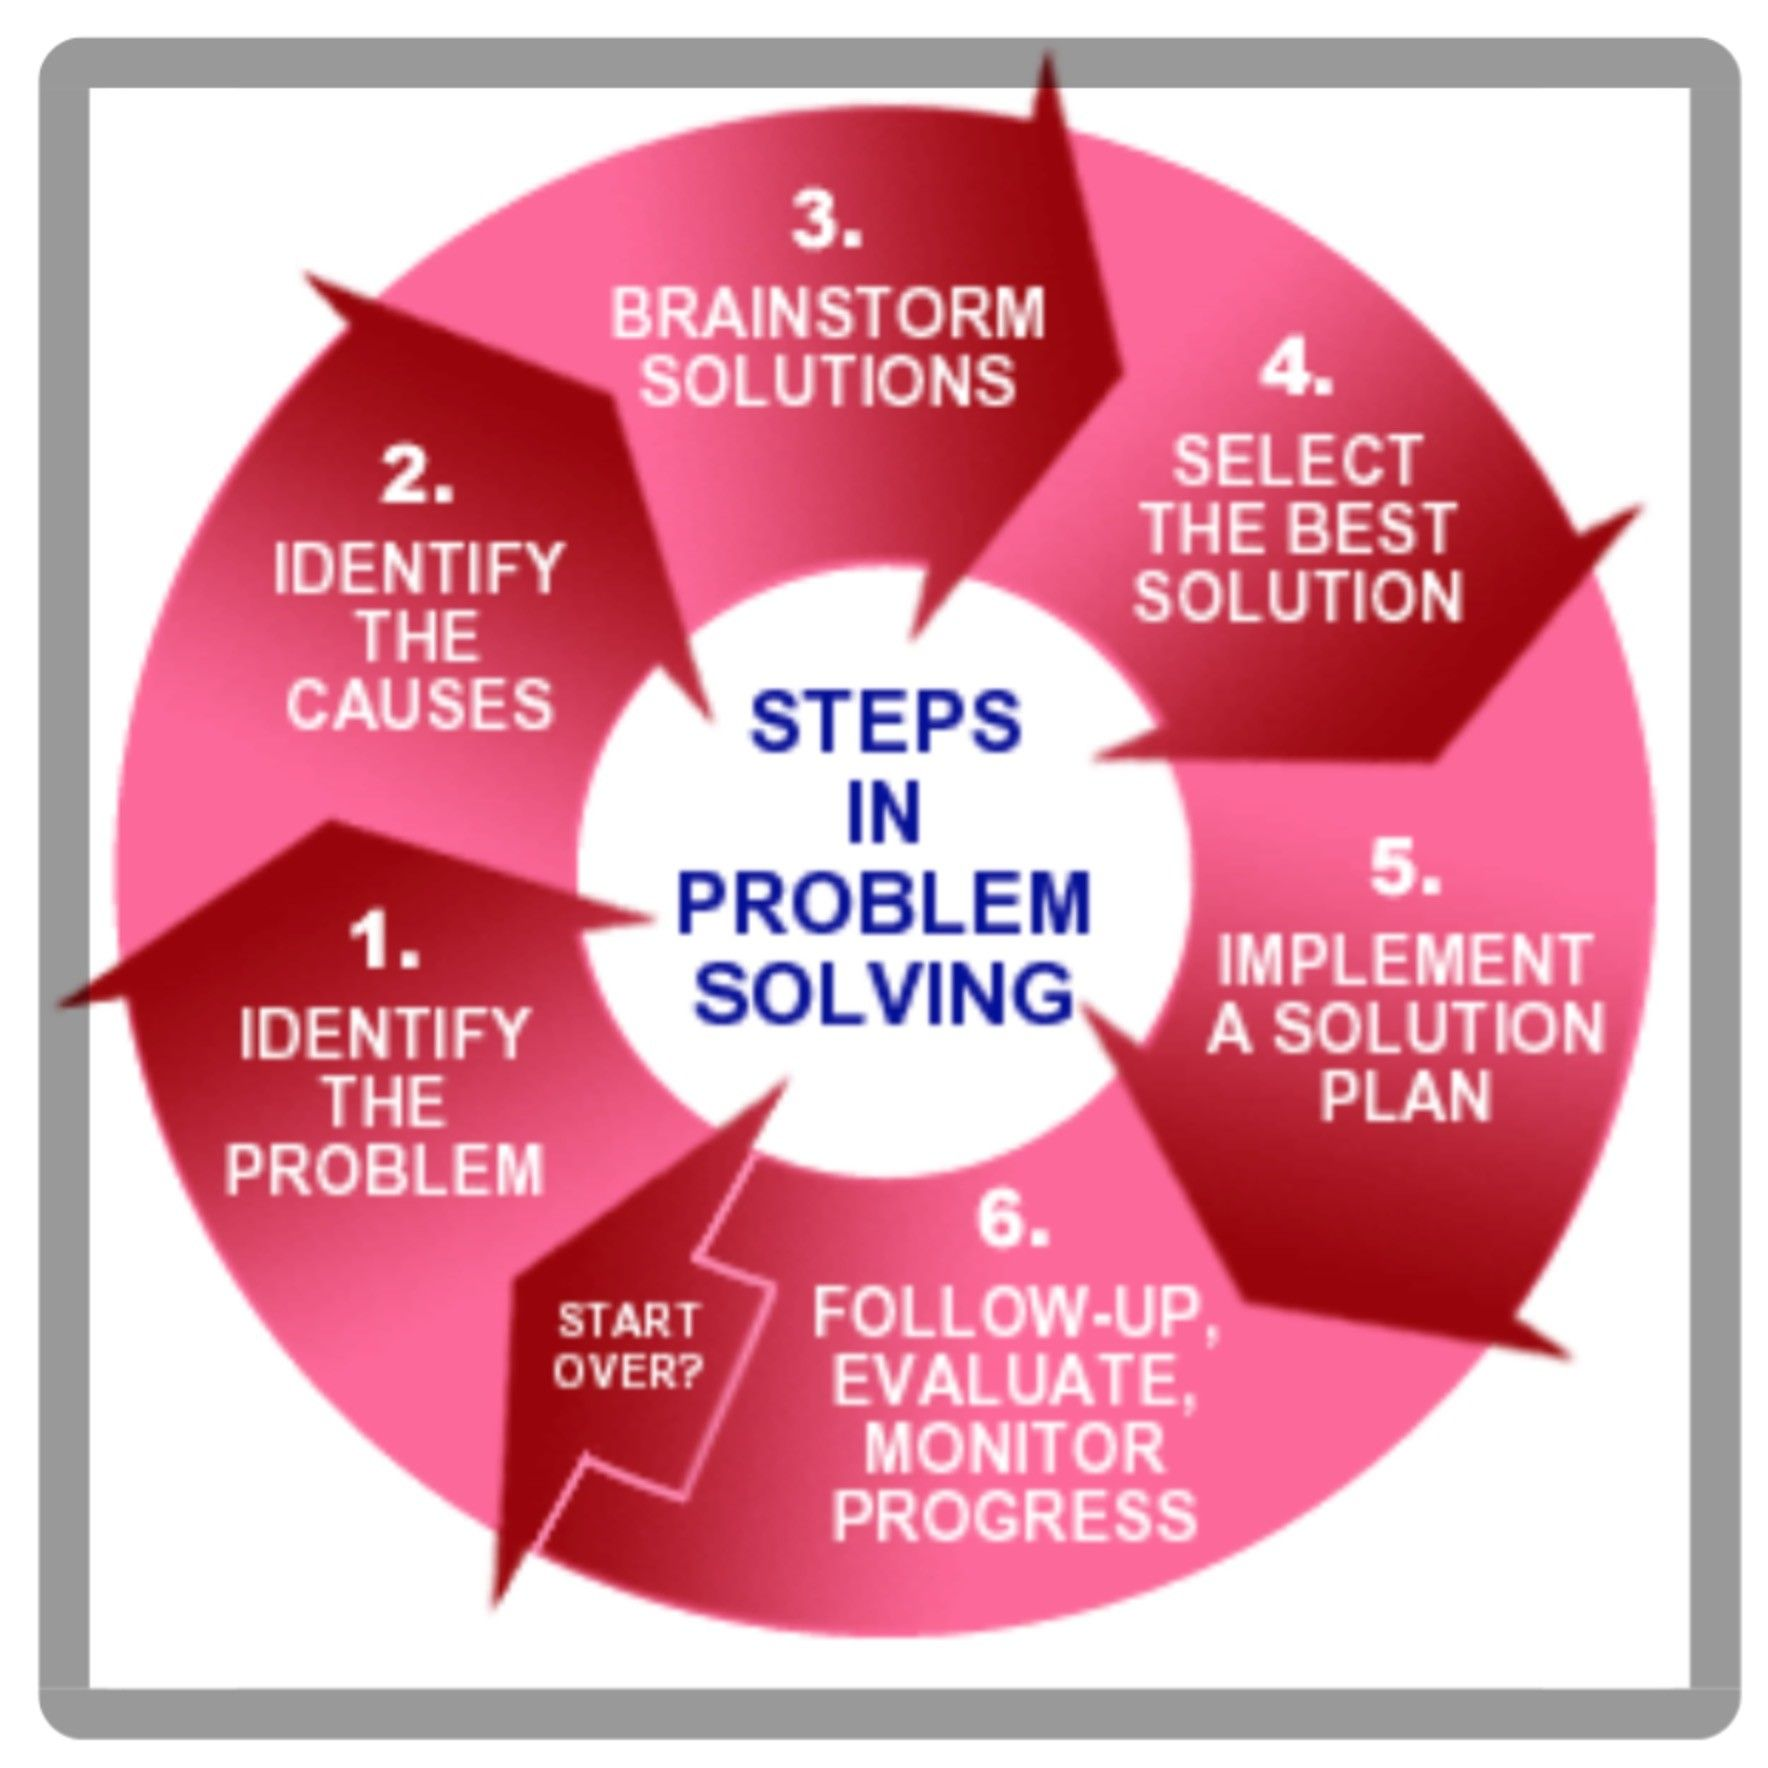 Monday Morning Tips For You Steps In How To Problem Solve